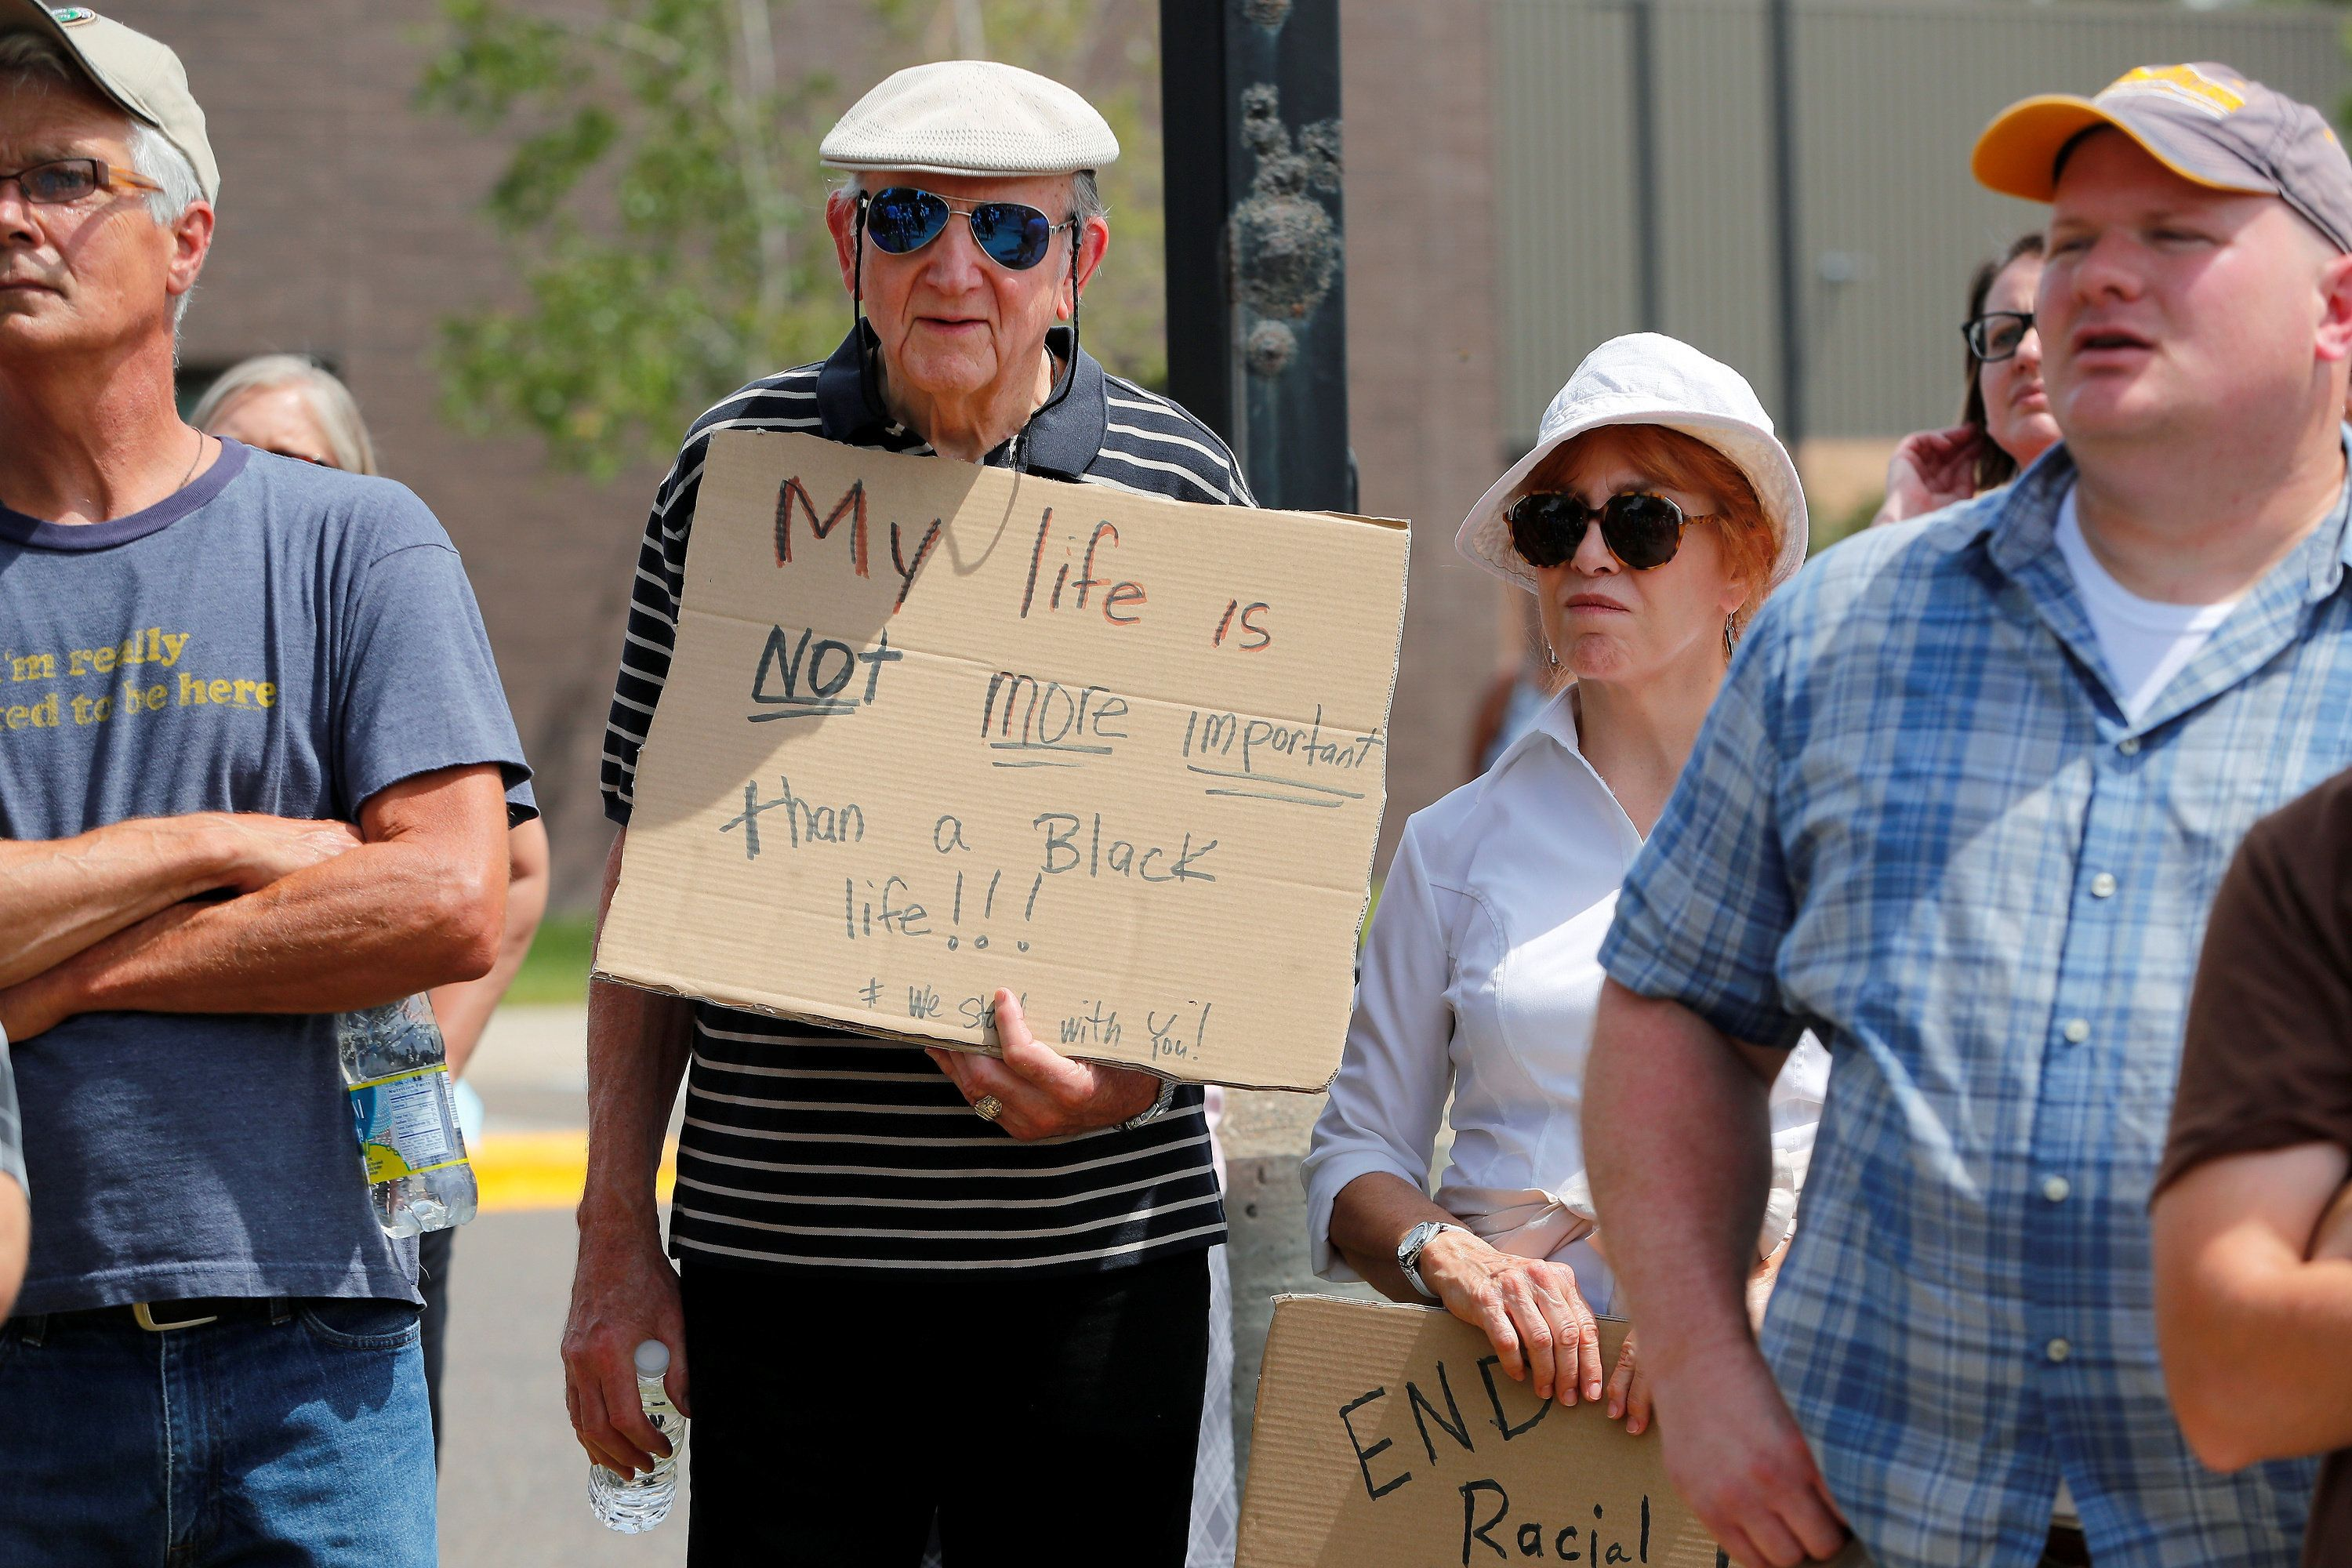 Demonstrators protesting the shooting death of Philando Castile gather in front of the police department in St. Anthony, Minn